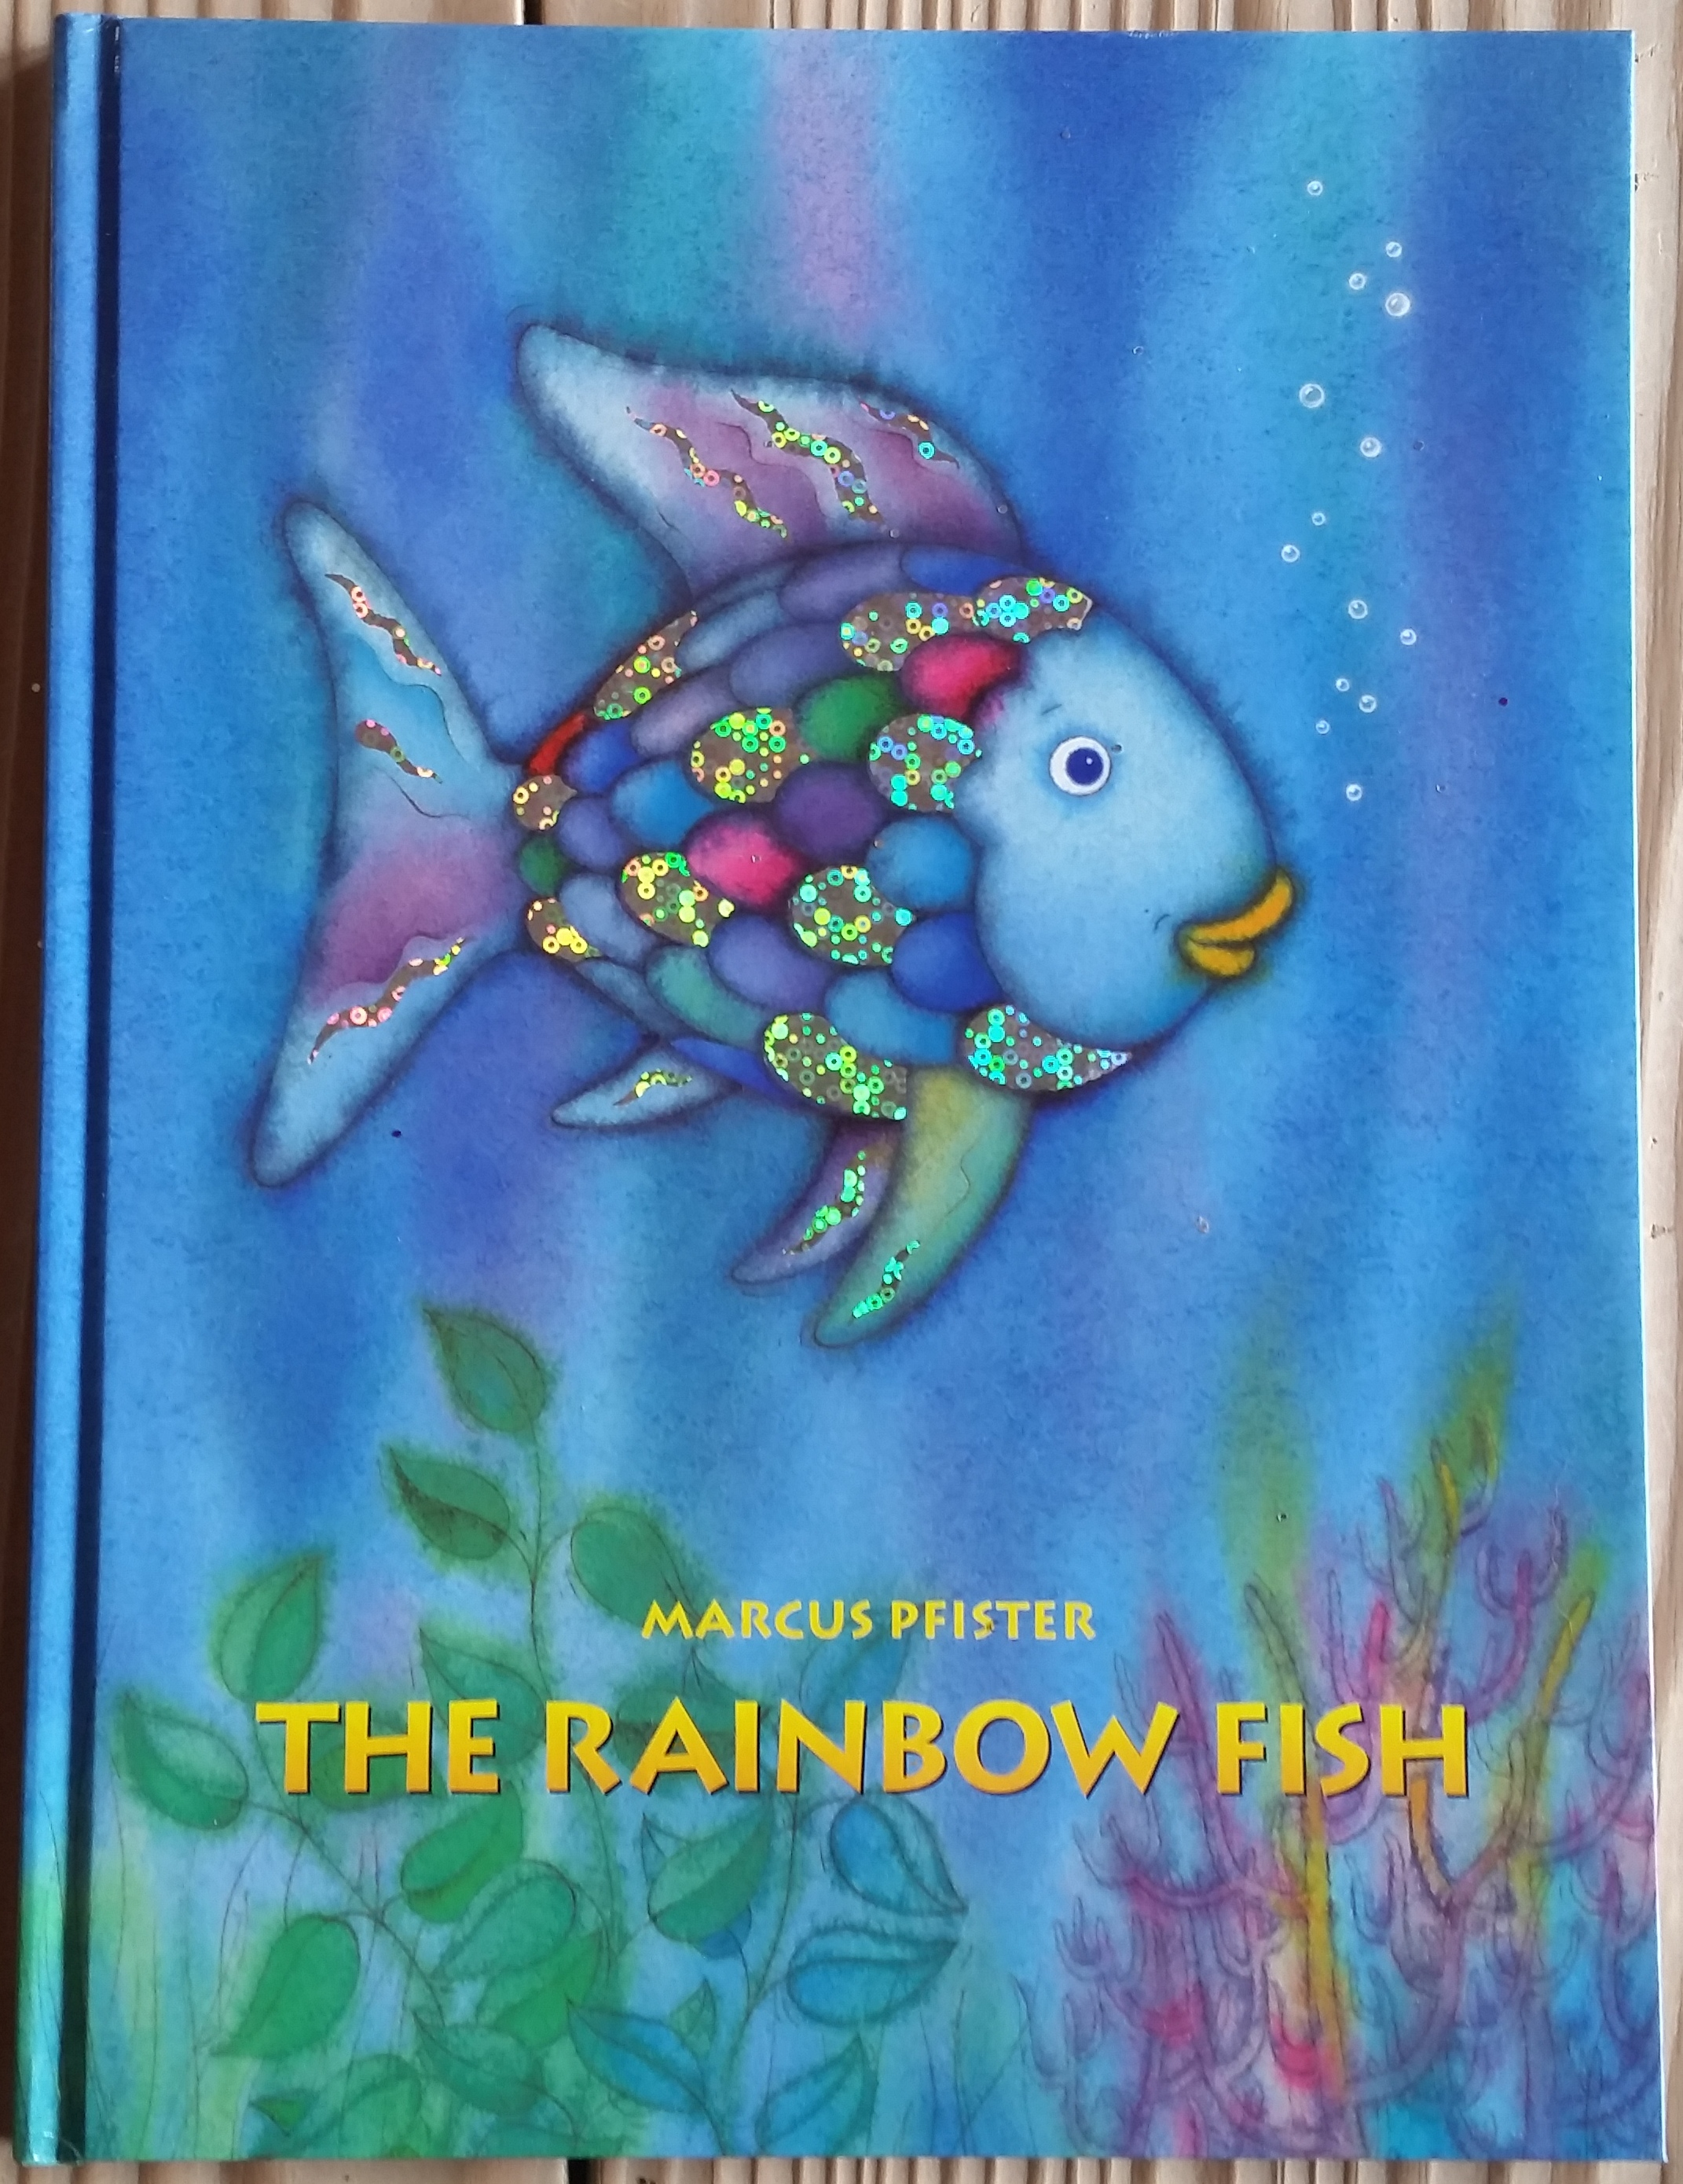 Rainbow fish art for The rainbow fish